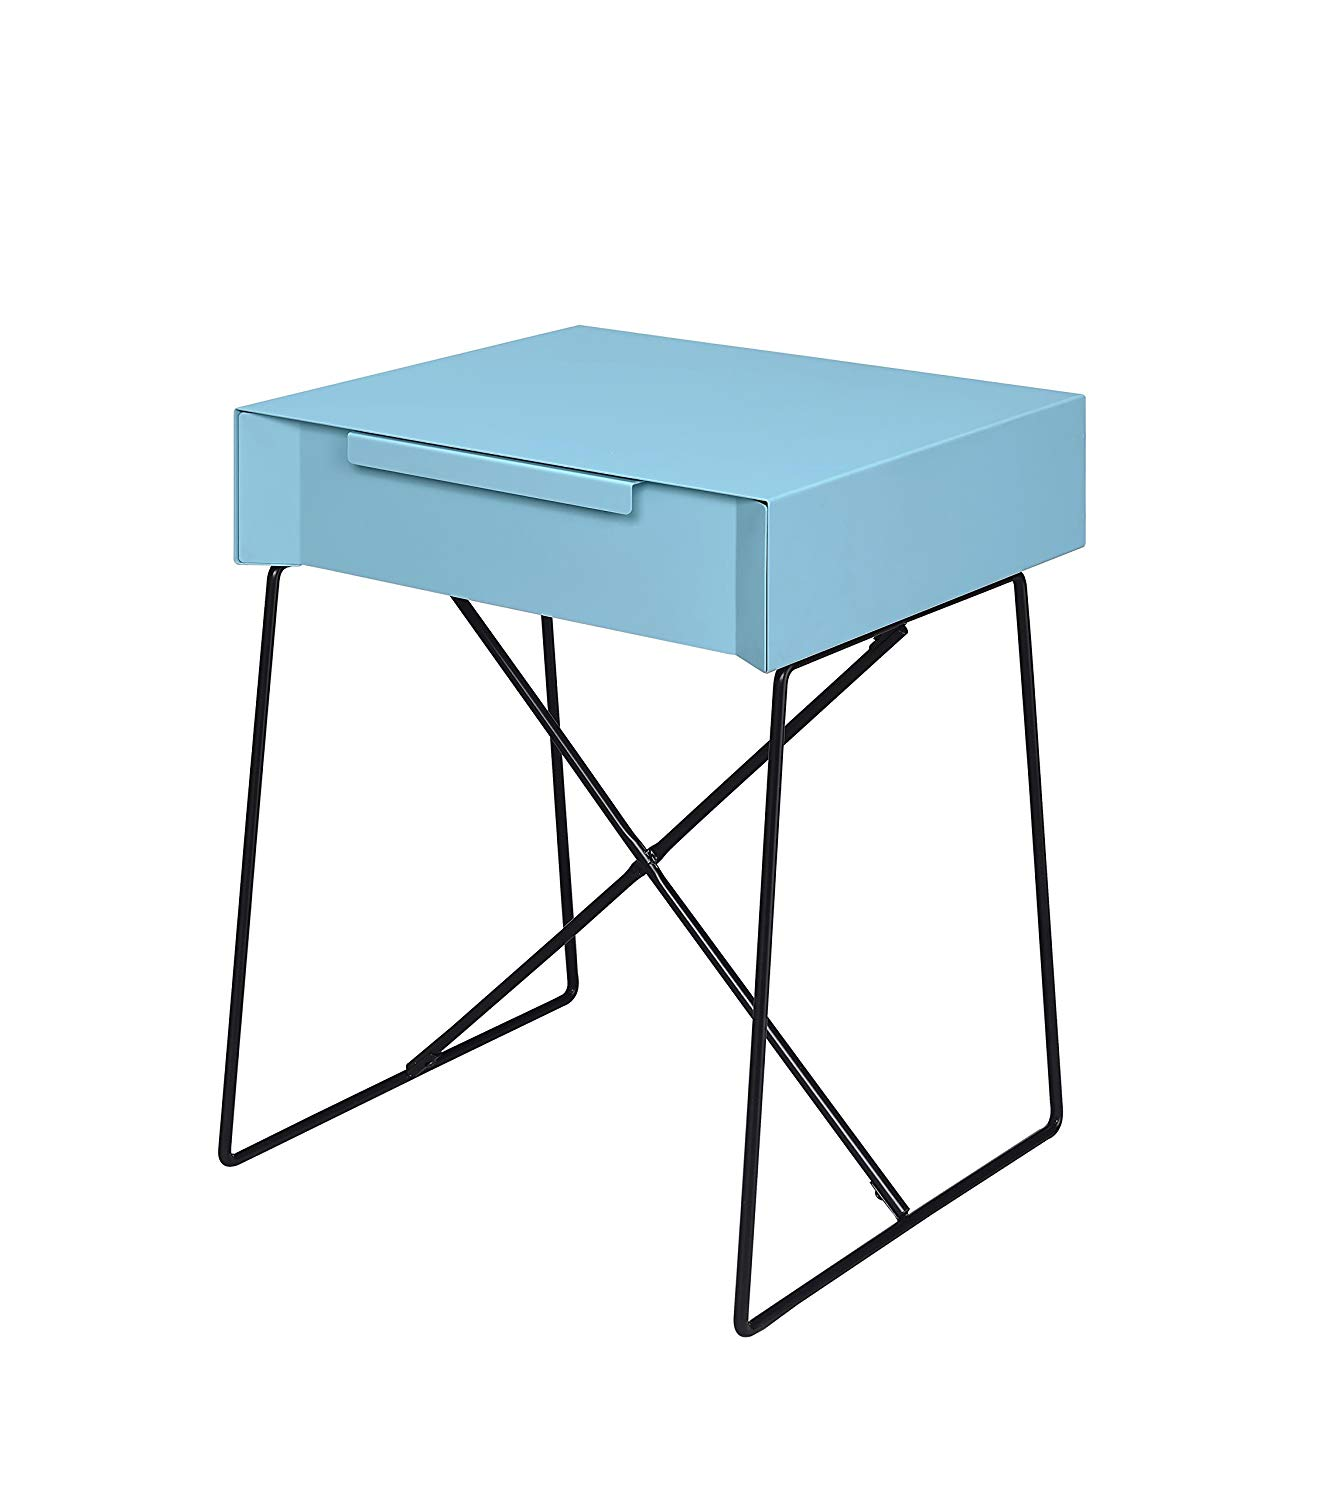 acme gualacao light blue end table kitchen dining patio side clearance size lamp kmart gold modern black sofa fire pit set ashley chocolate turquoise wood coffee furniture row